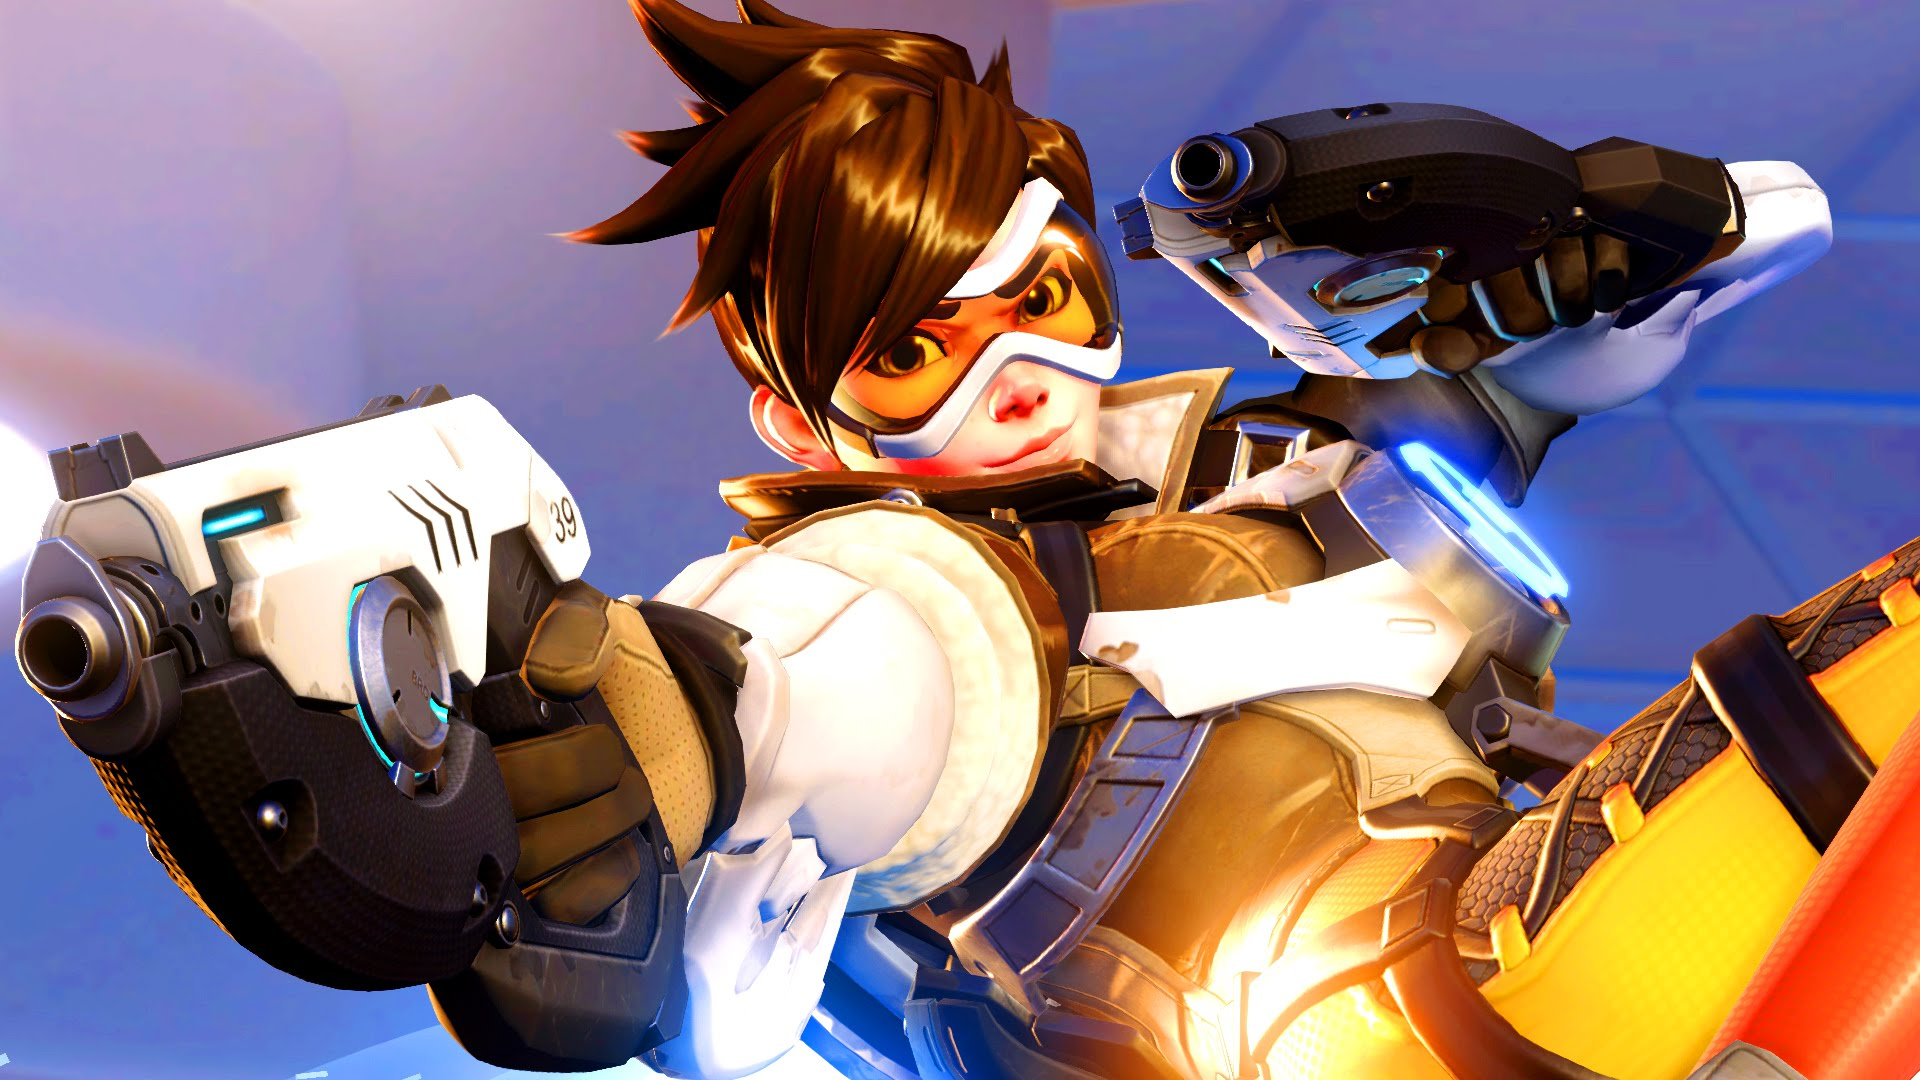 Overwatch Tracer Hd Wallpapers 7wallpapers Net